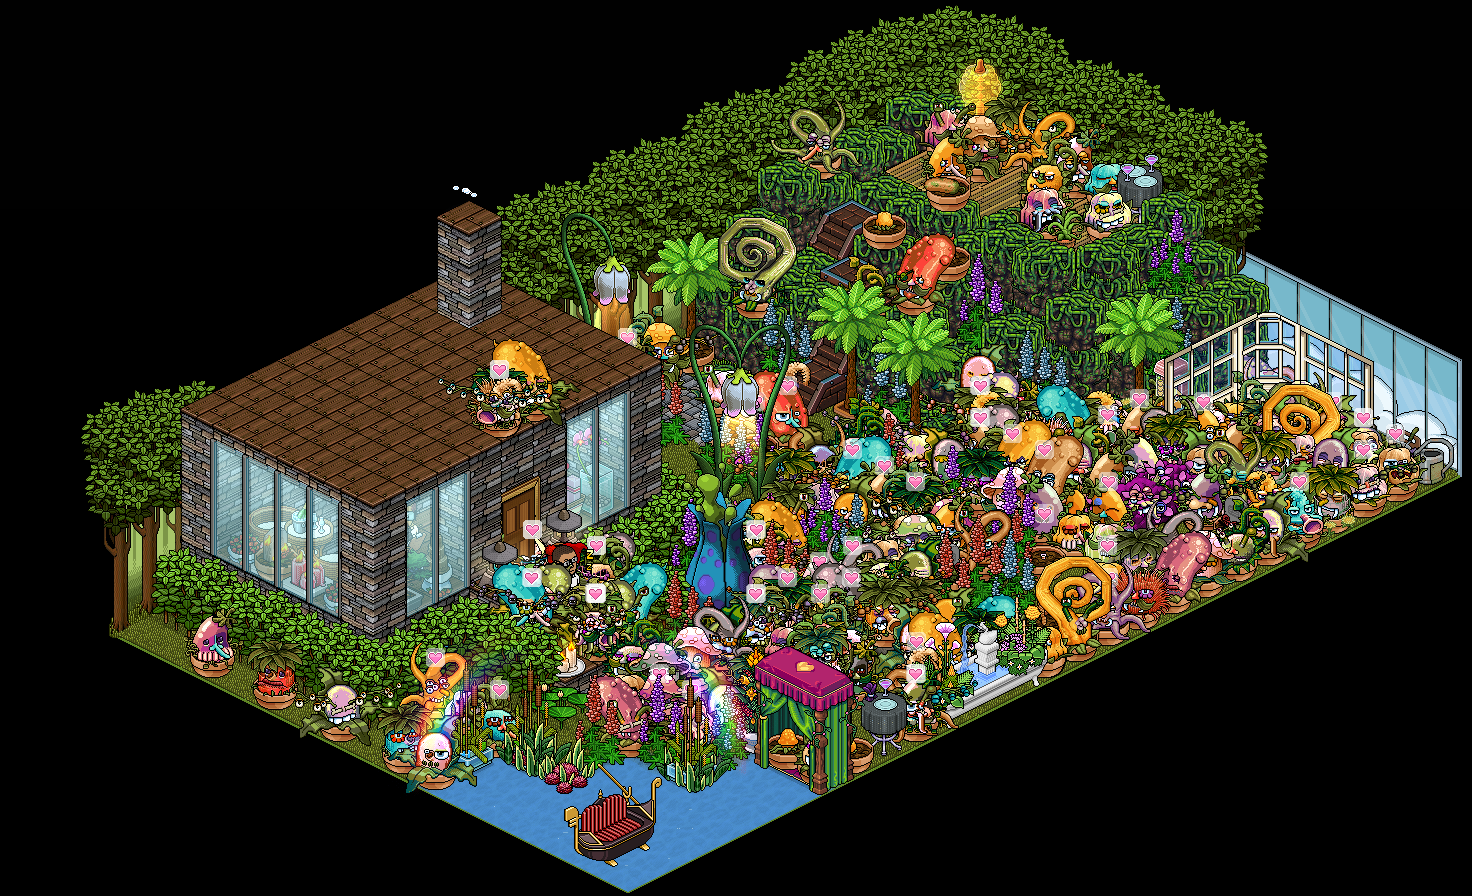 Cool Plants For Your Room Monster Plants Take Over Habbo Hotel Image Courtesy Of